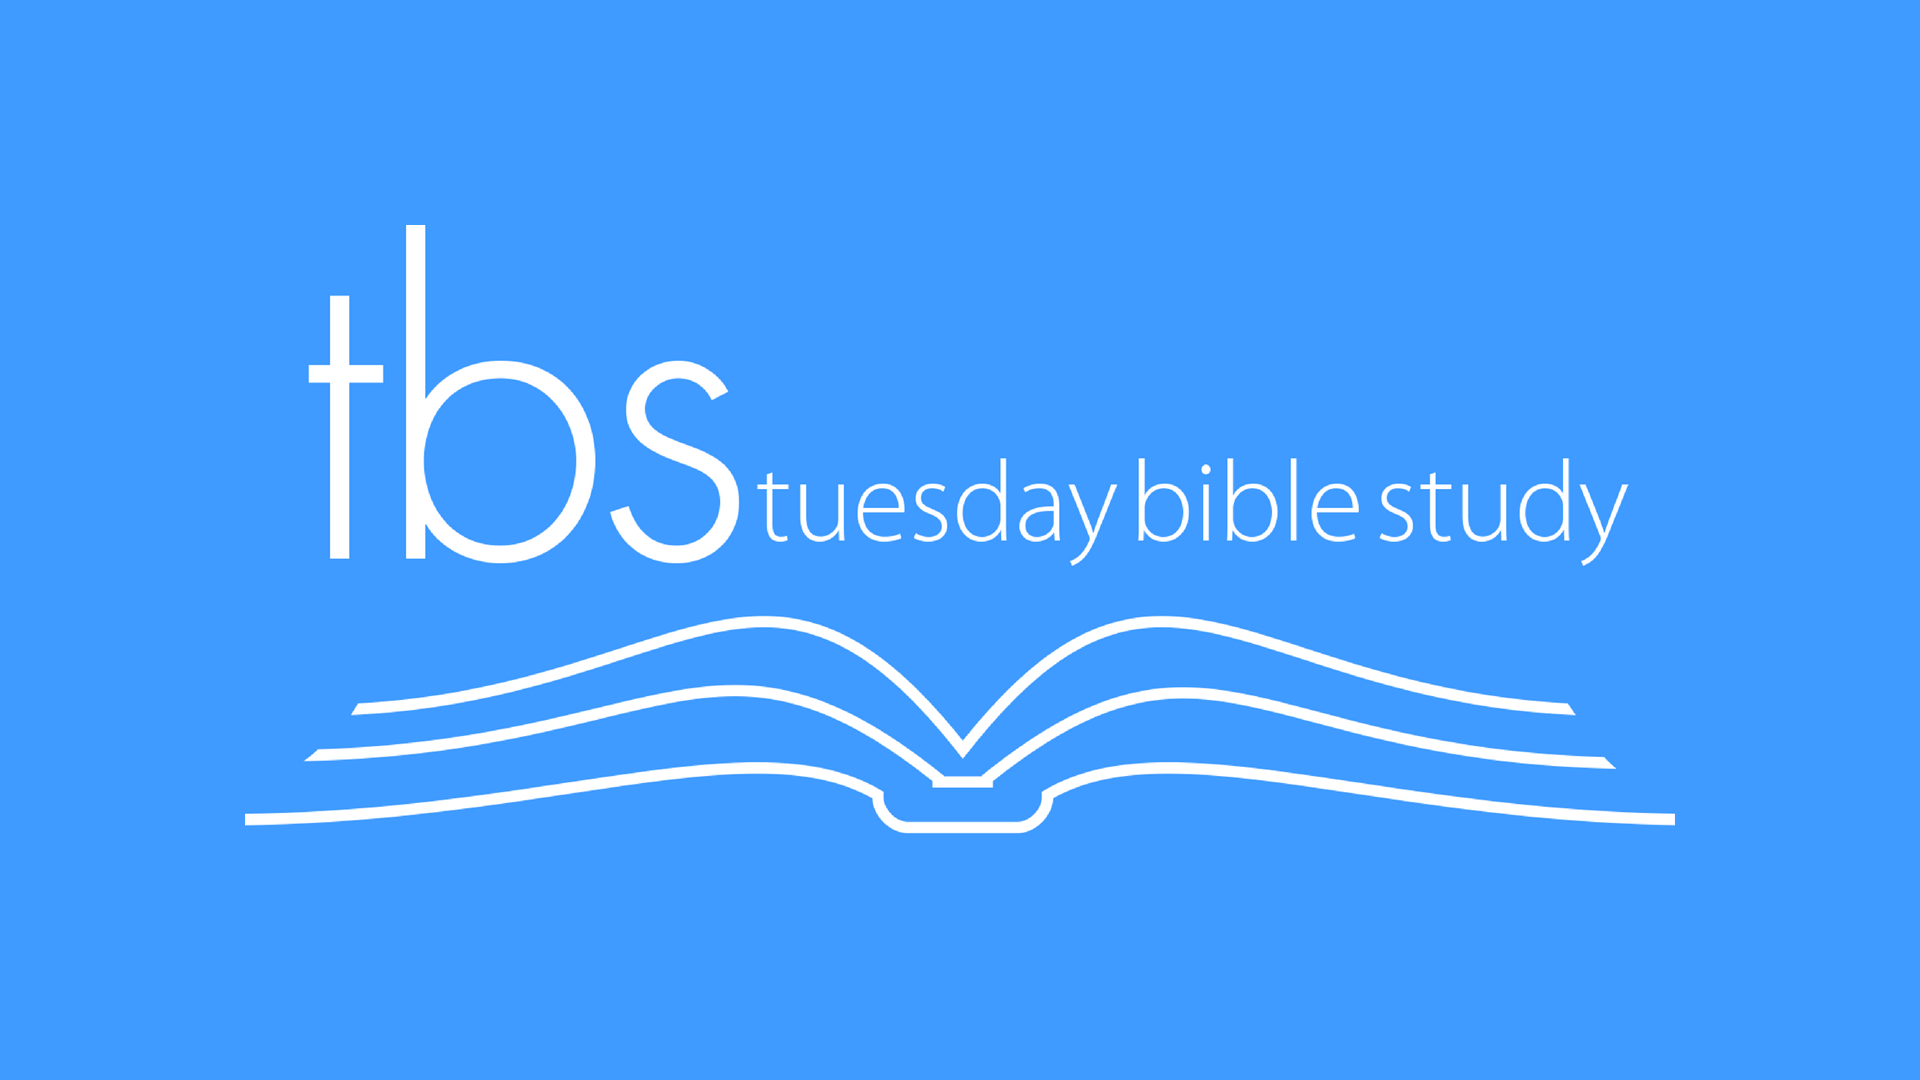 Tuesday Bible Study (TBS)